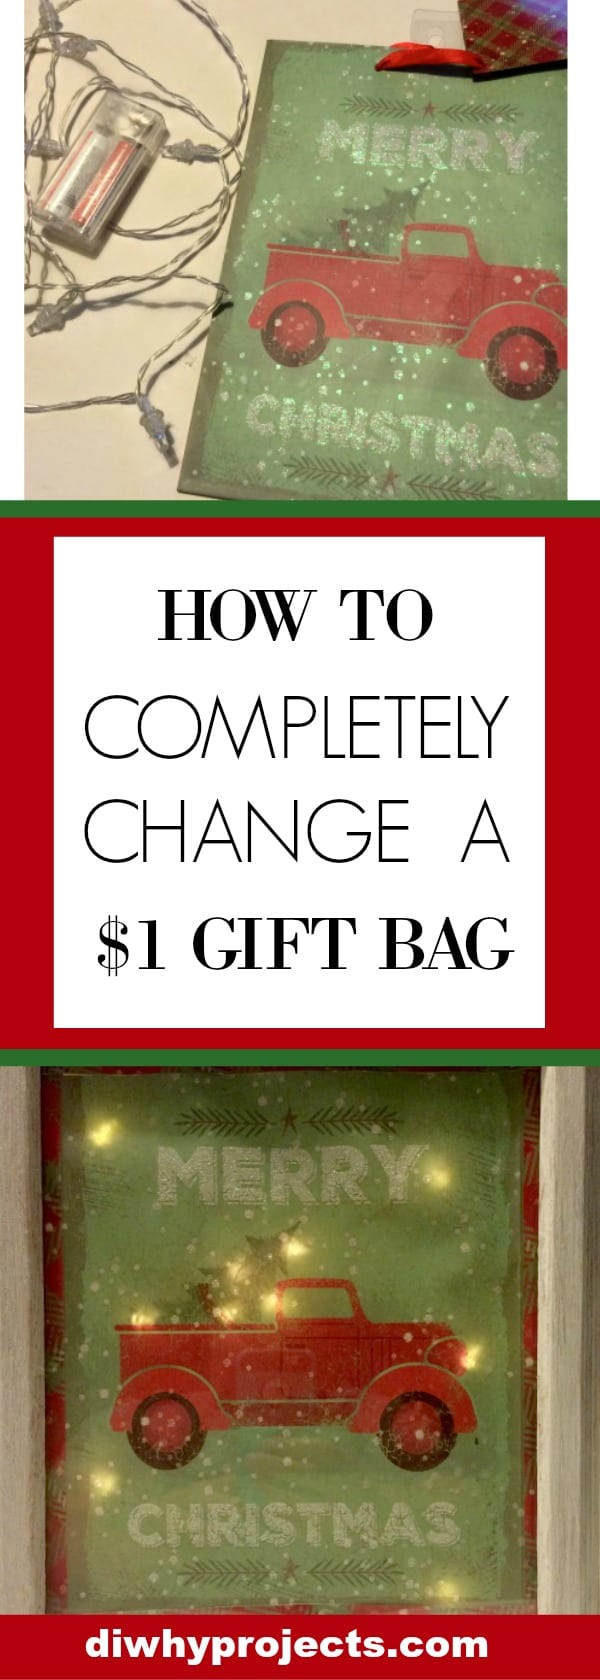 Change $1 Christmas Bag to Light Up Sign